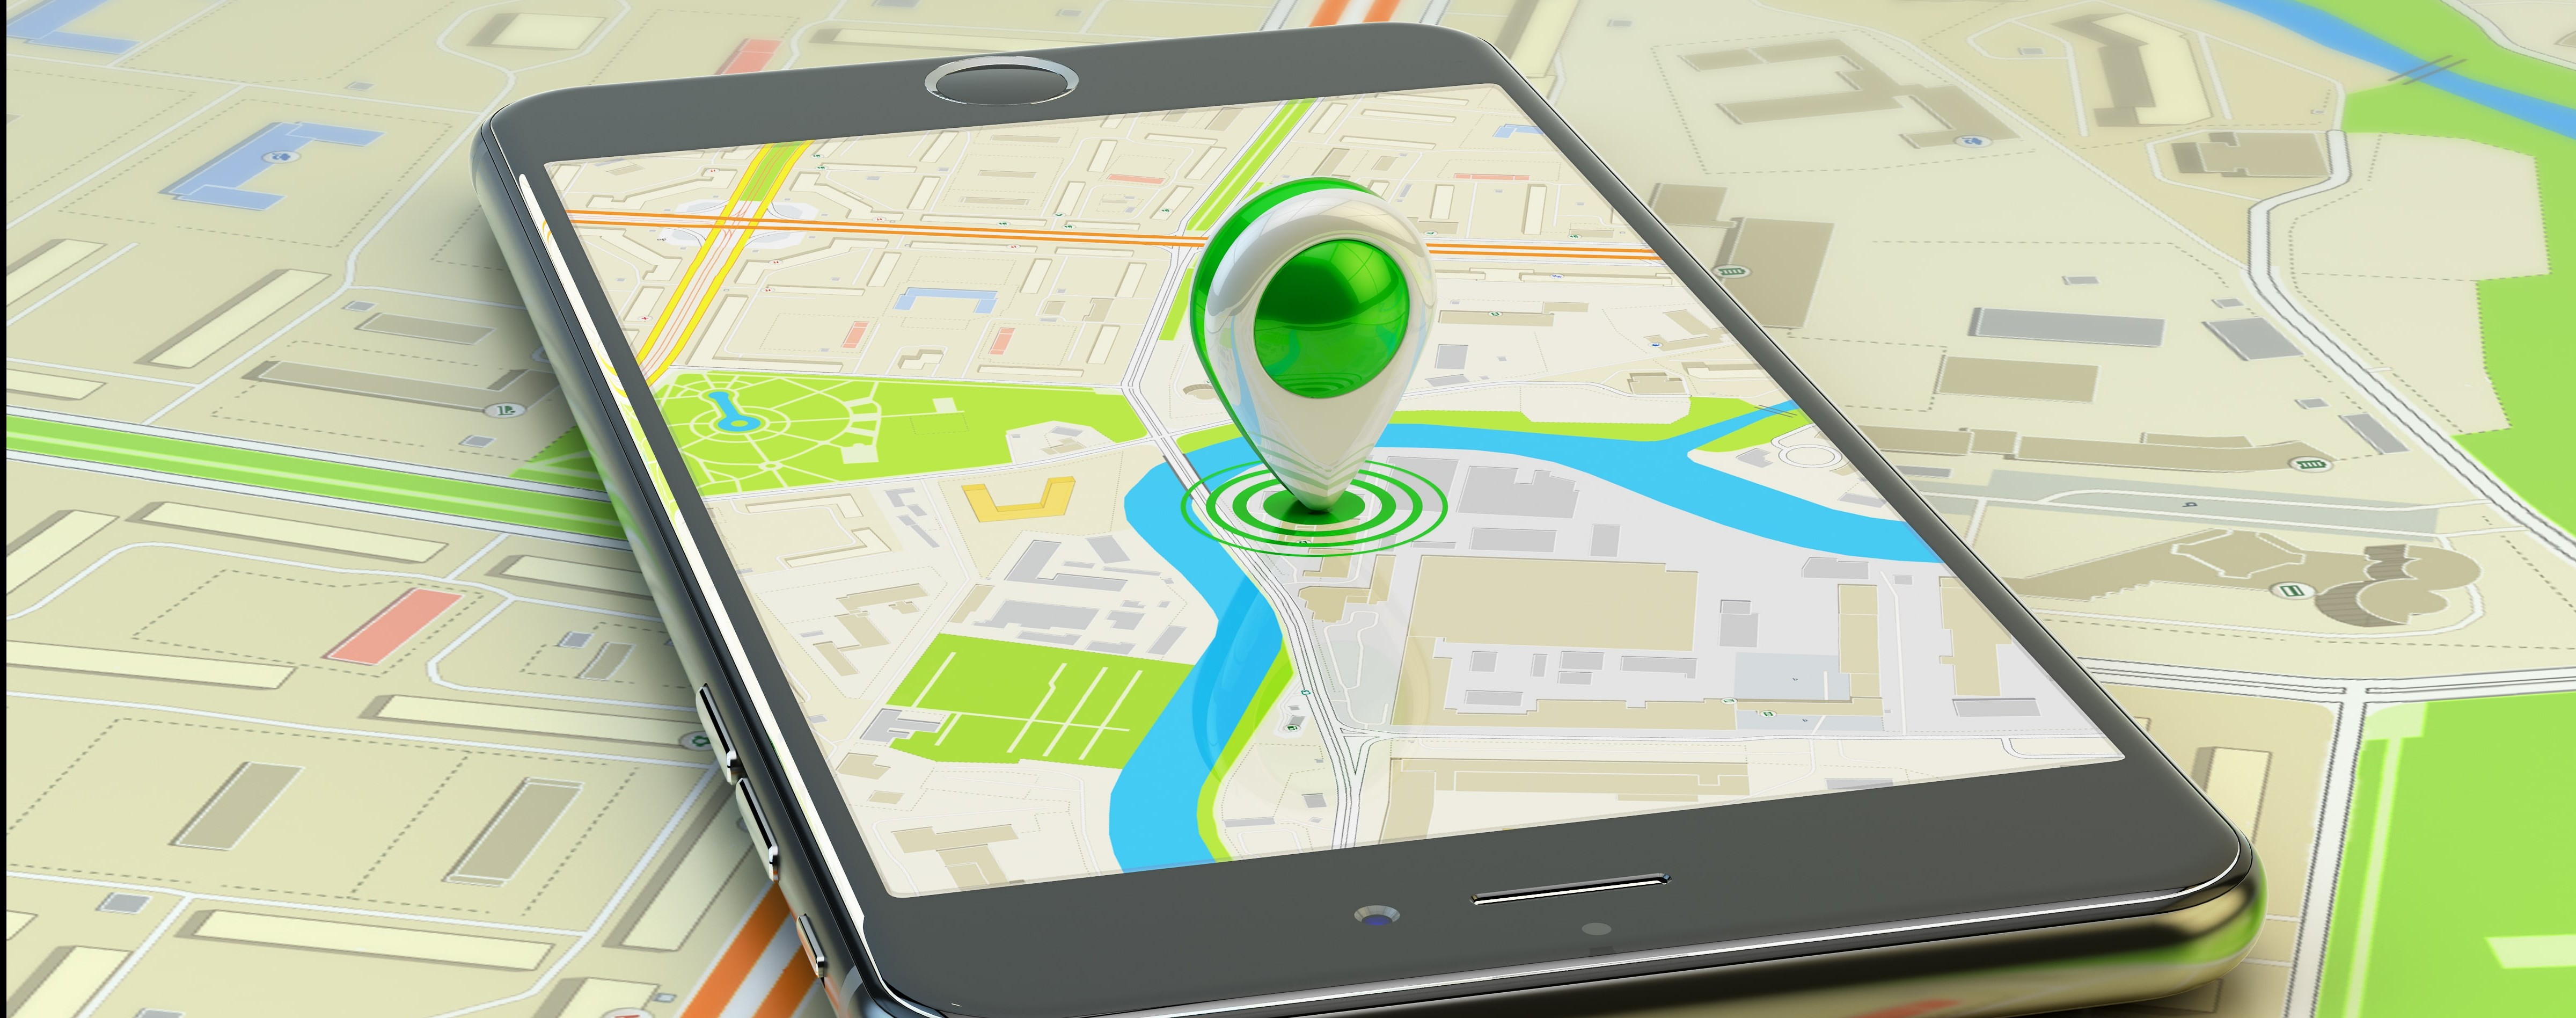 Track the phone on the map 85